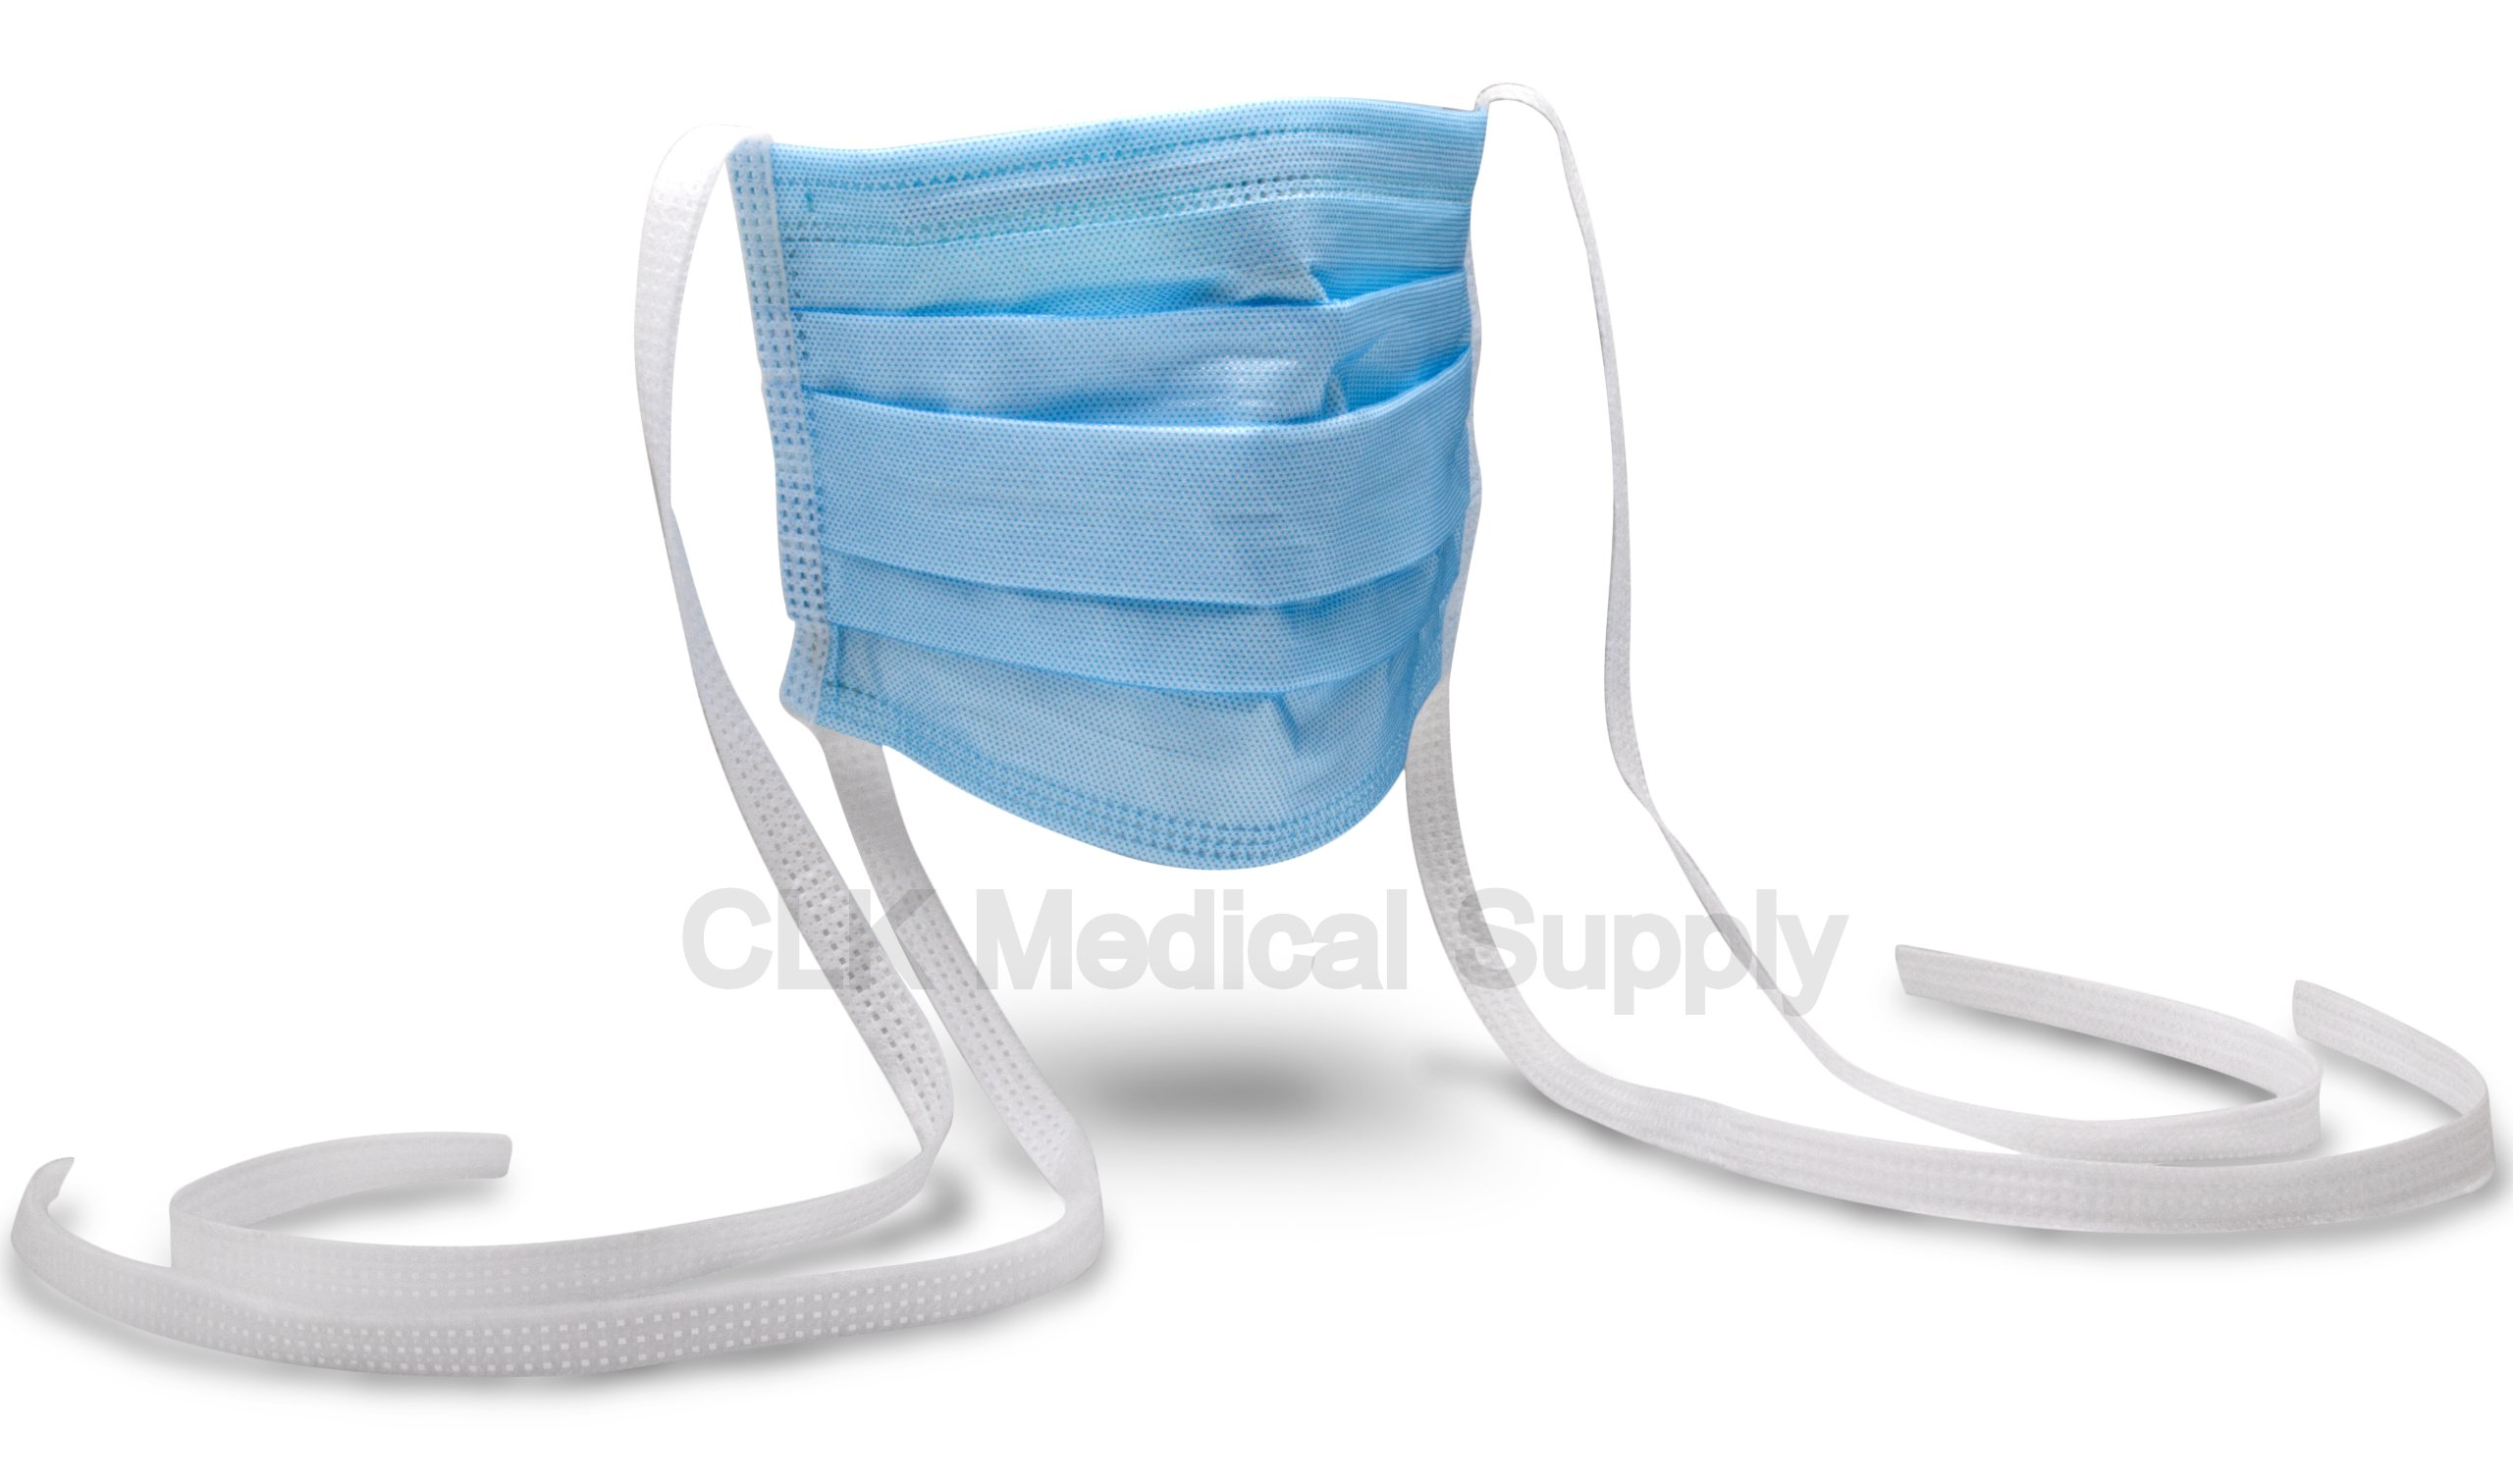 CLK Max-D Tie On Surgical Masks, Blue, 500pcs/Case, 10 Boxes per Case, Box of 50, 4 ply, 4 folded, (Light and Soft) (FDA 510K, CE, ASTM Level III, EN14683 Type IIR) (99% BFE, 99% PFE) by CLK